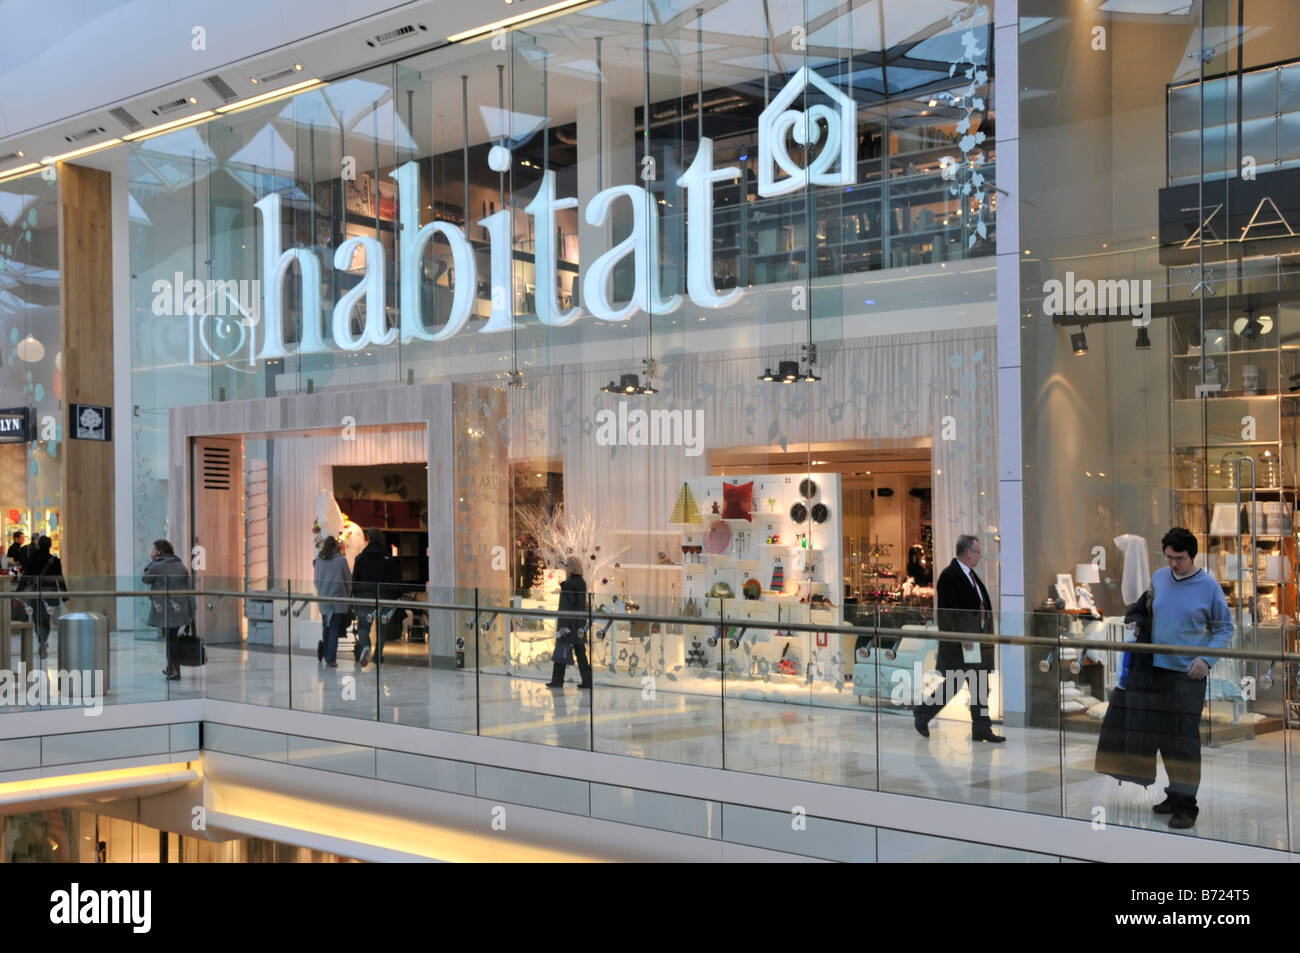 Habitat Outlet Hamburg Shopfront Exterior Mall Stock Photos Shopfront Exterior Mall